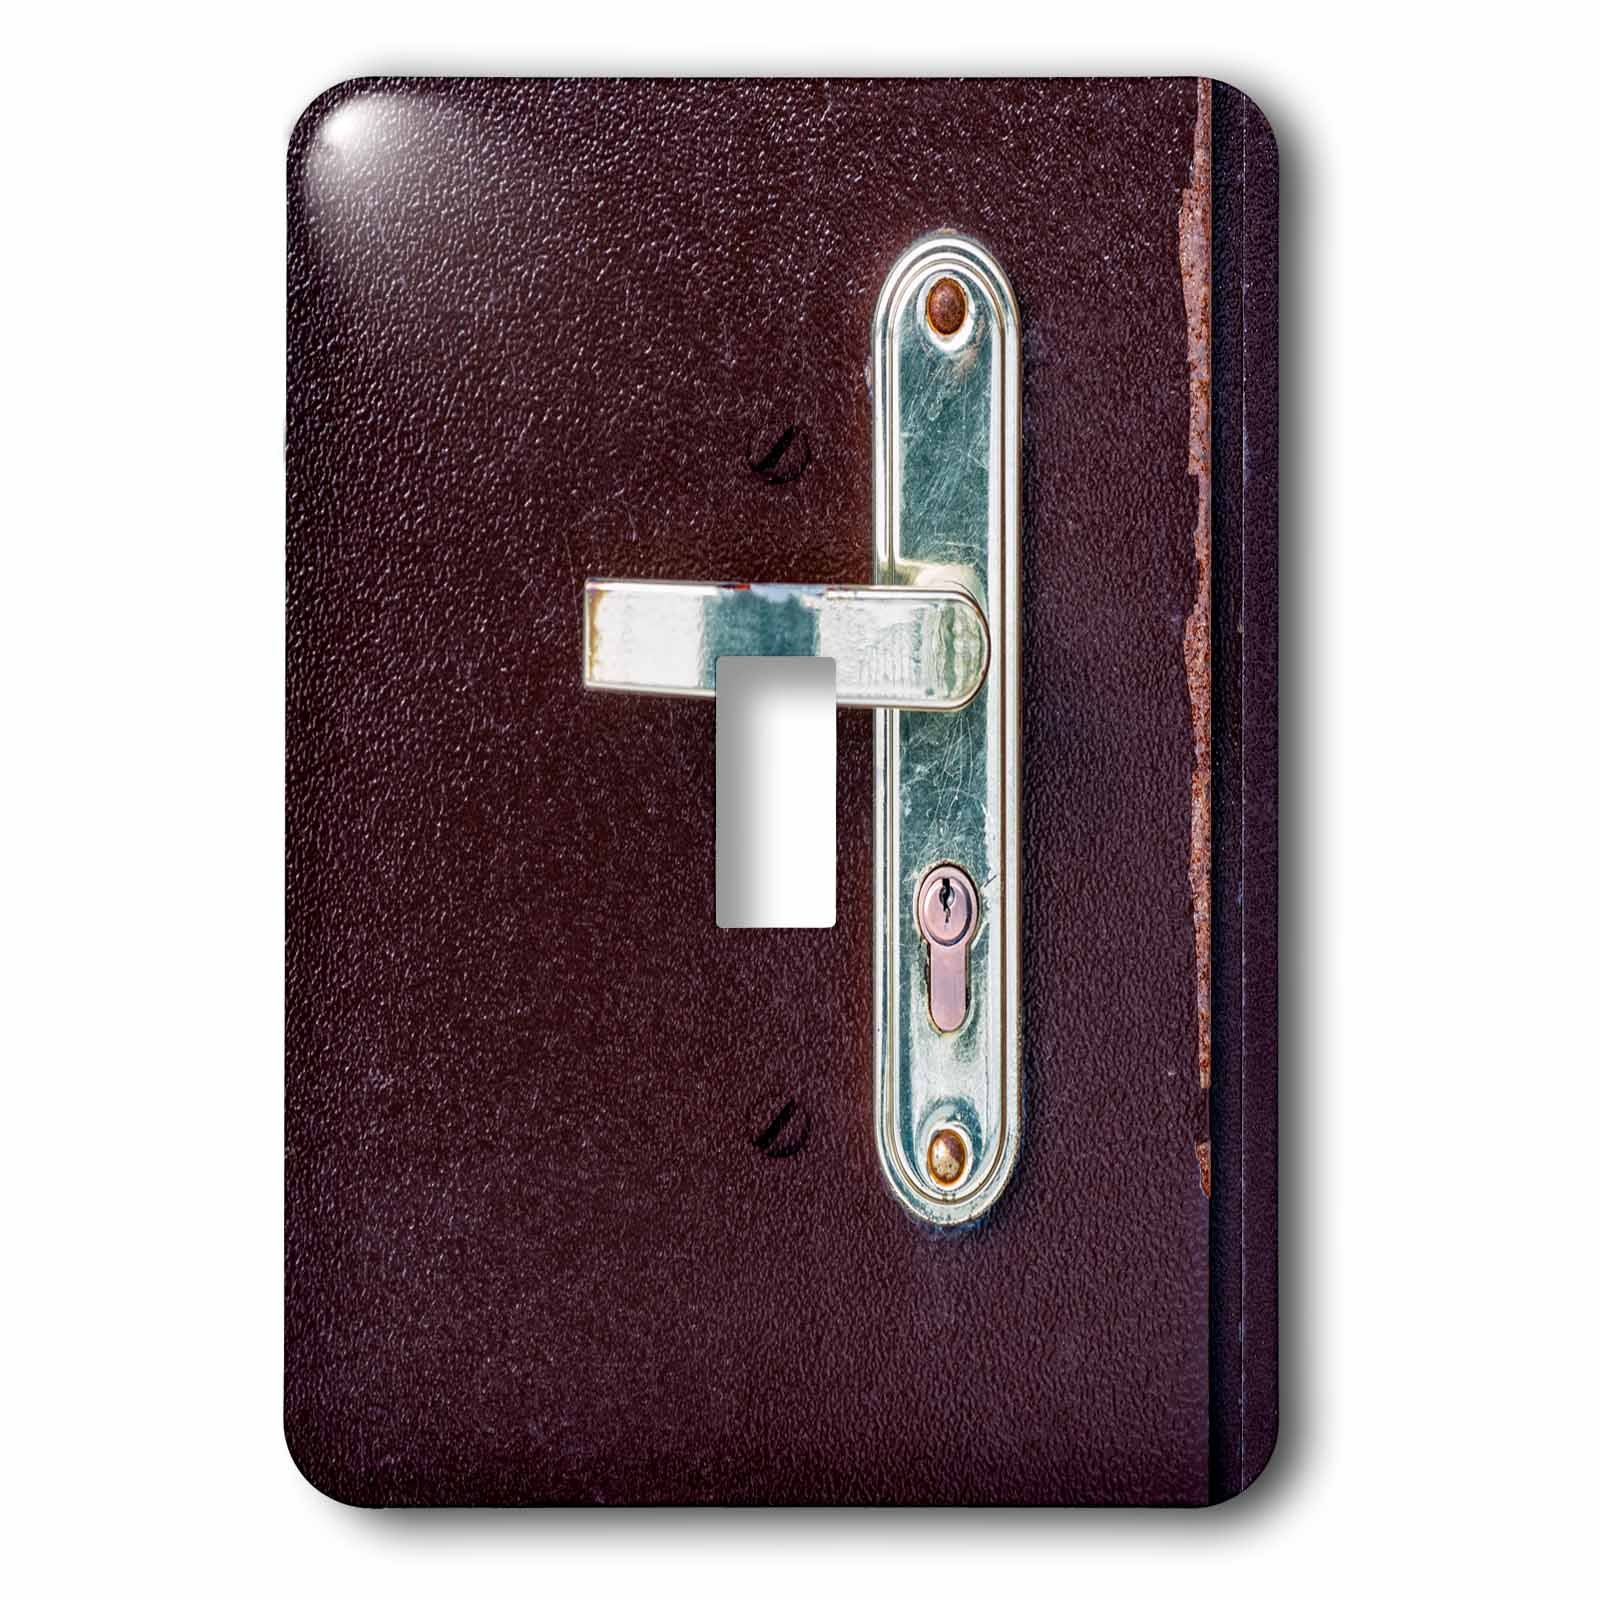 3dRose Alexis Photography - Objects - Image of a metal door, lock and a metal handle. Metal texture - Light Switch Covers - single toggle switch (lsp_283846_1)